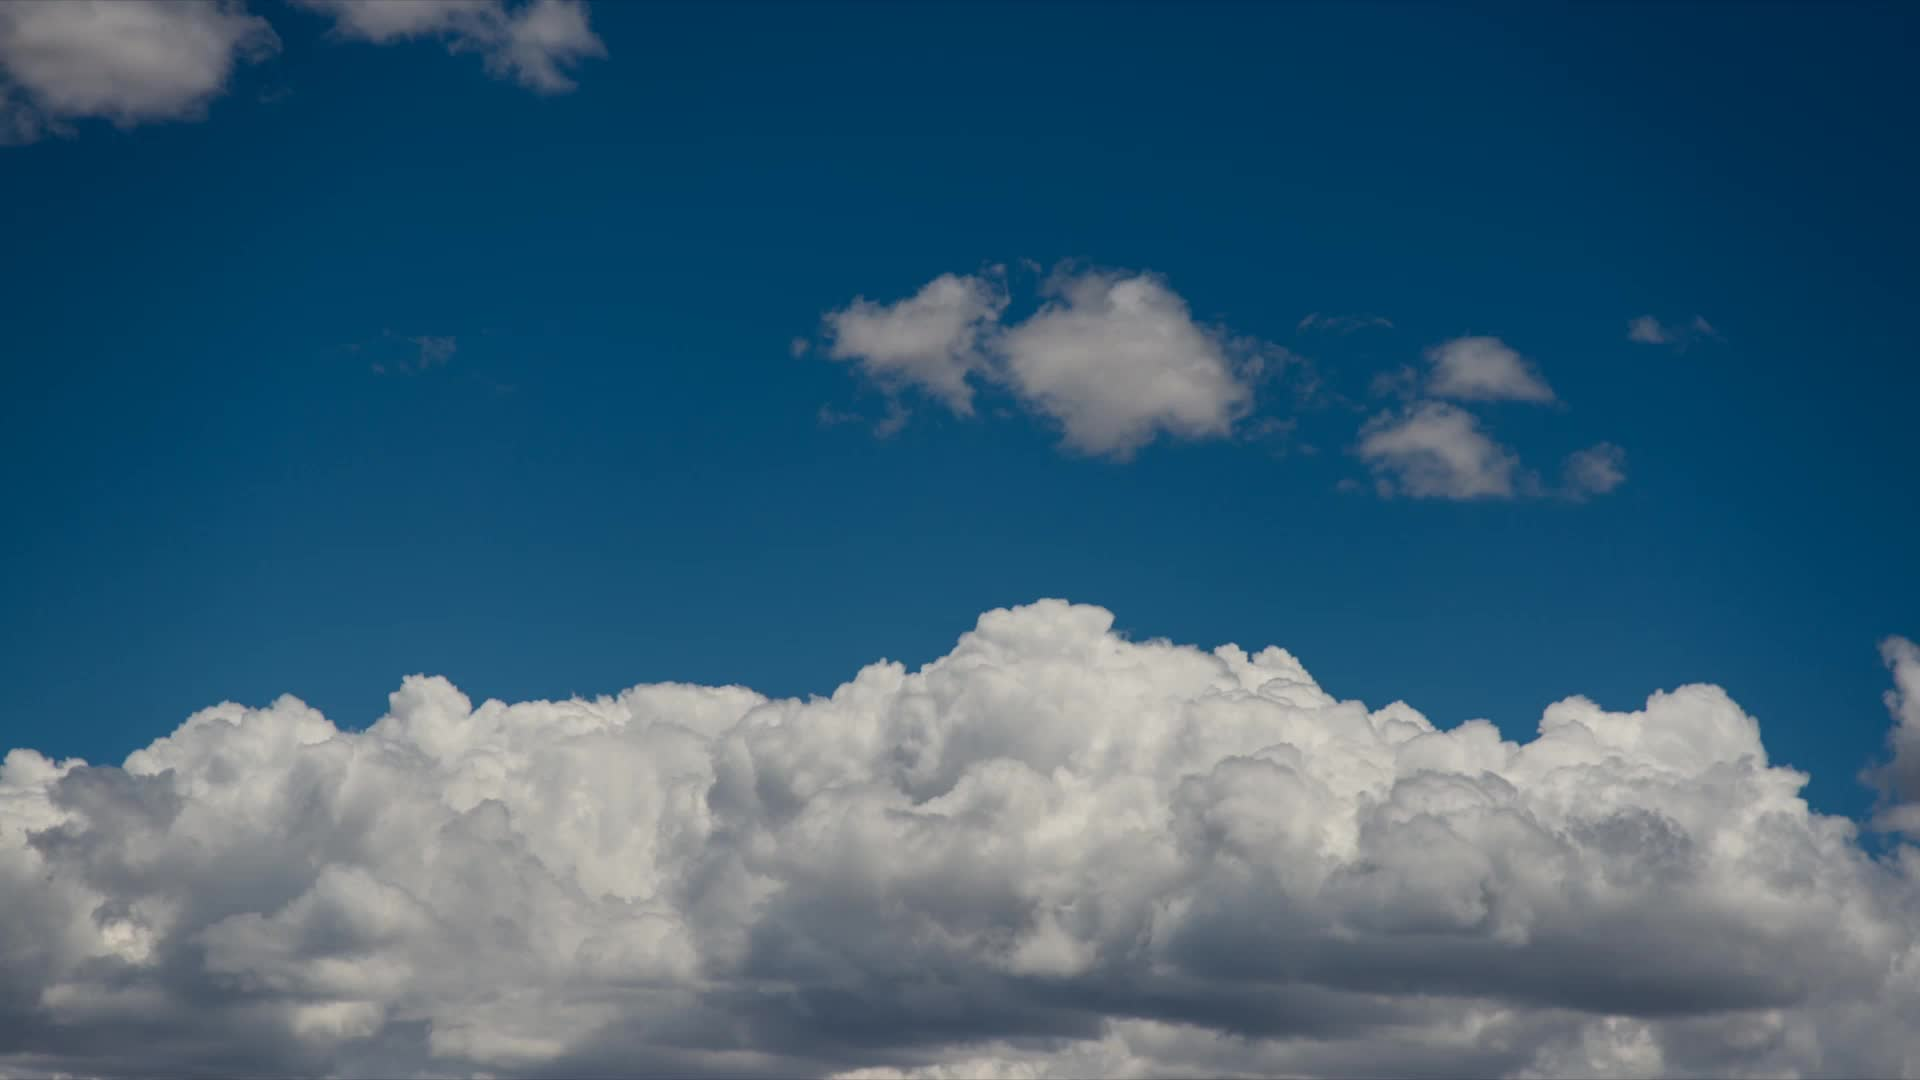 More Clouds timelapse | Flickr - Photo Sharing!